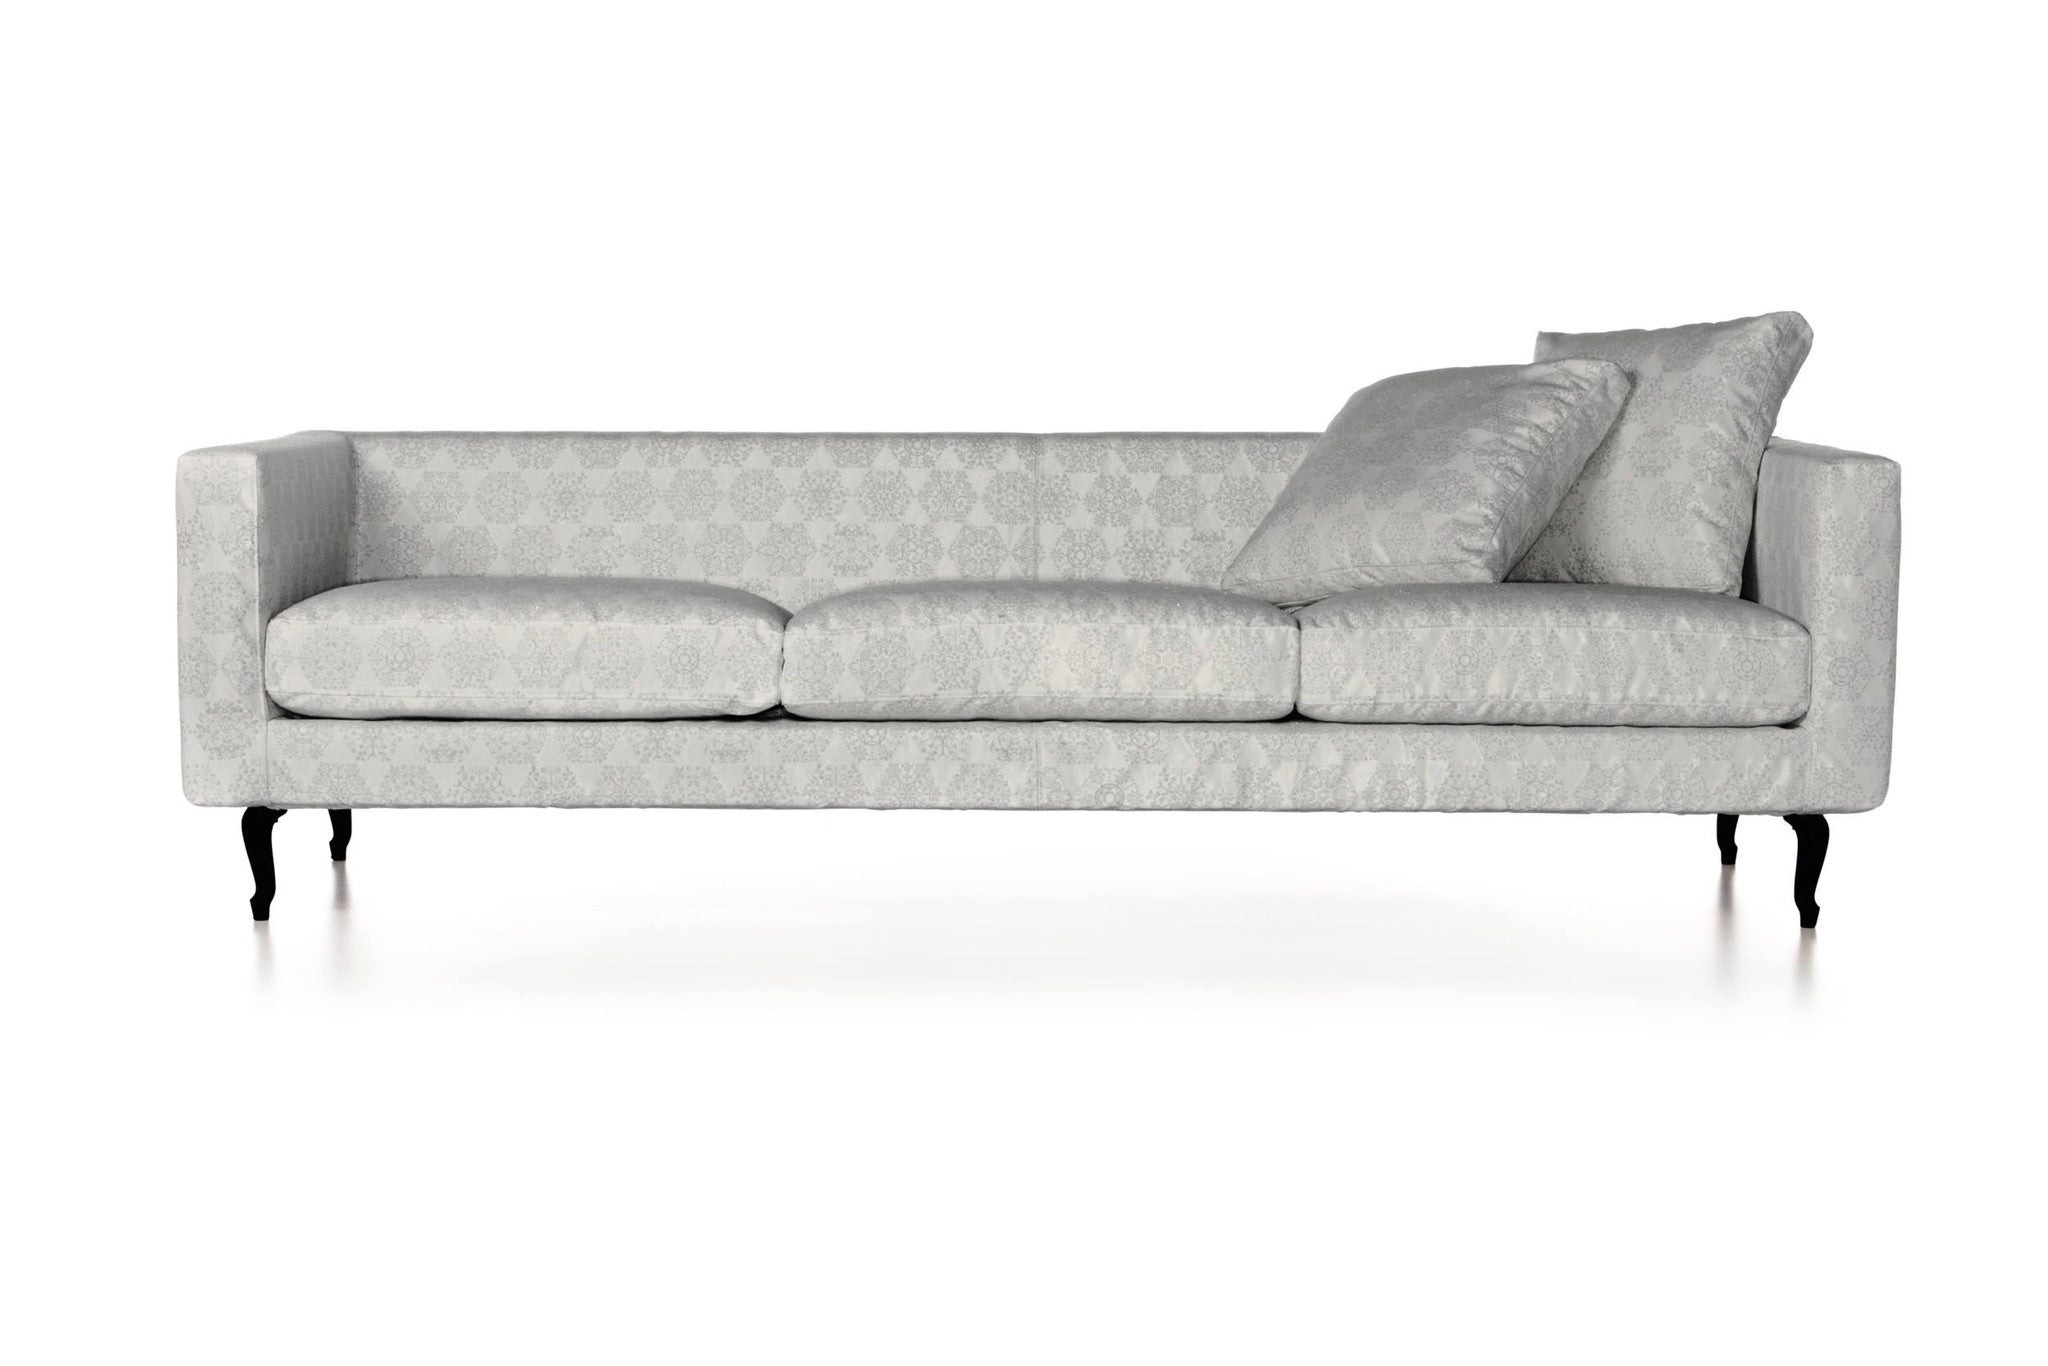 BOUTIQUE SOPHY DOUBLE SEATER - Fine Bone Luxury Living